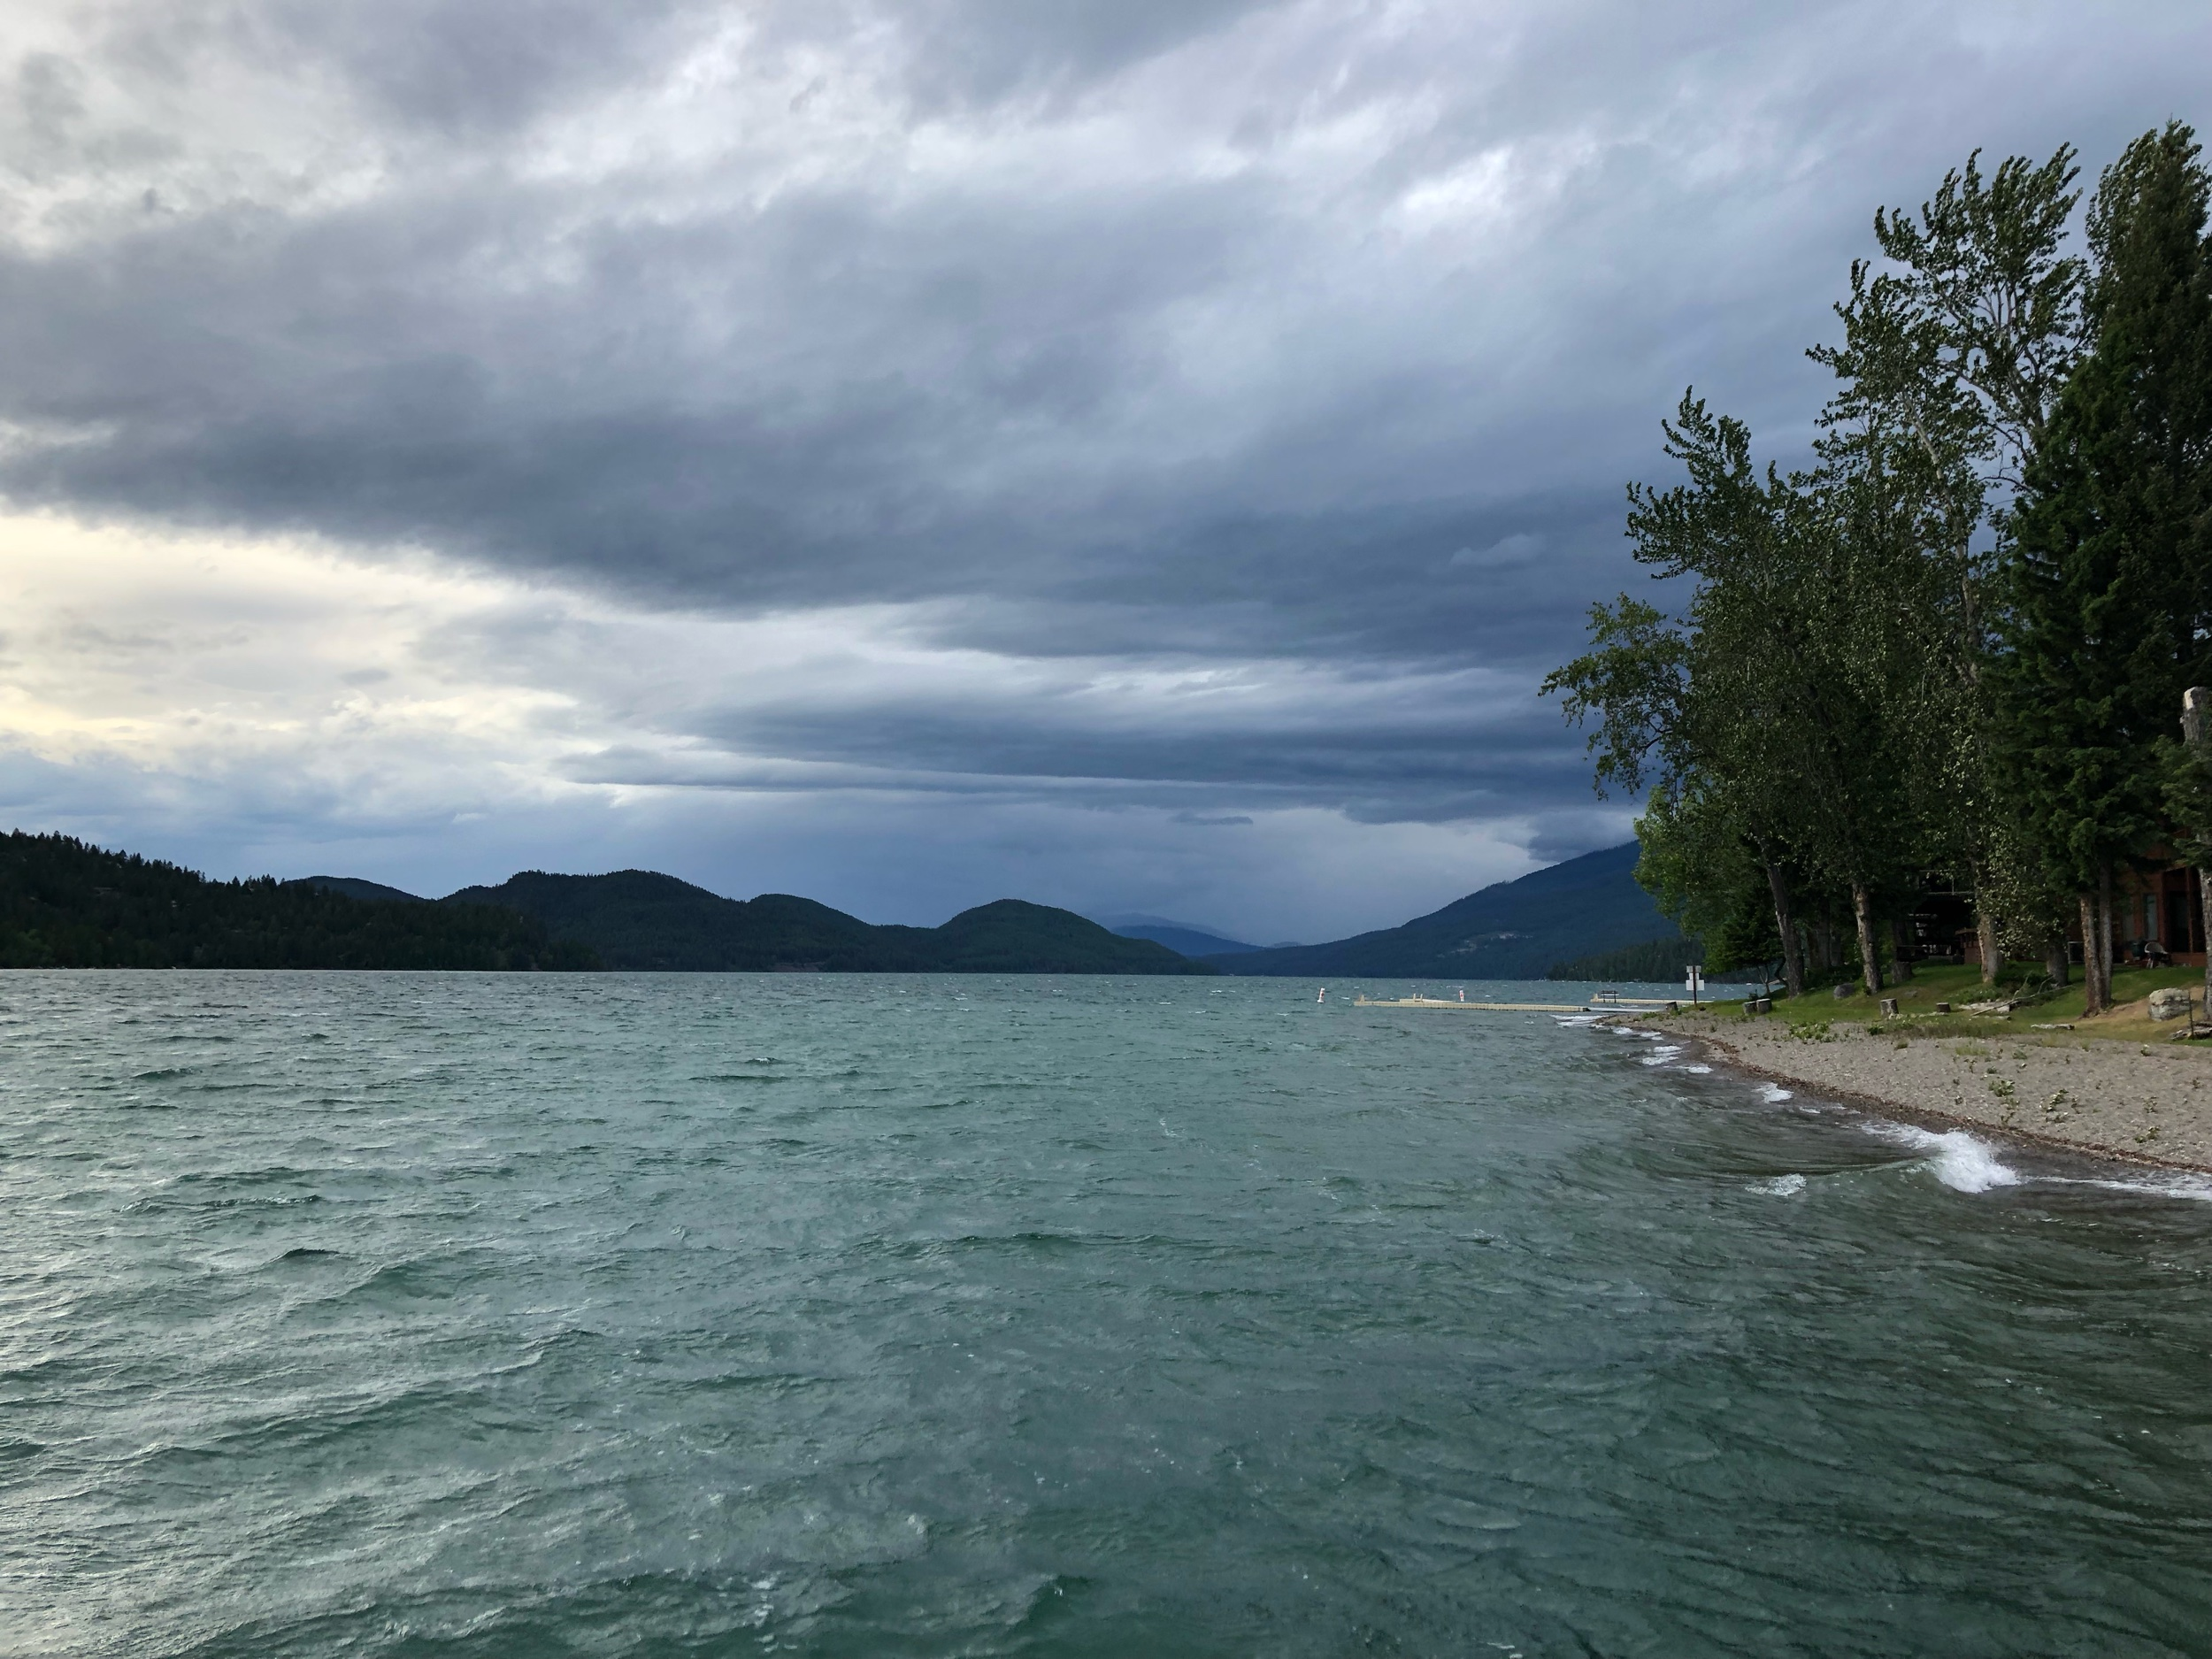 Big storm rolling into Whitefish